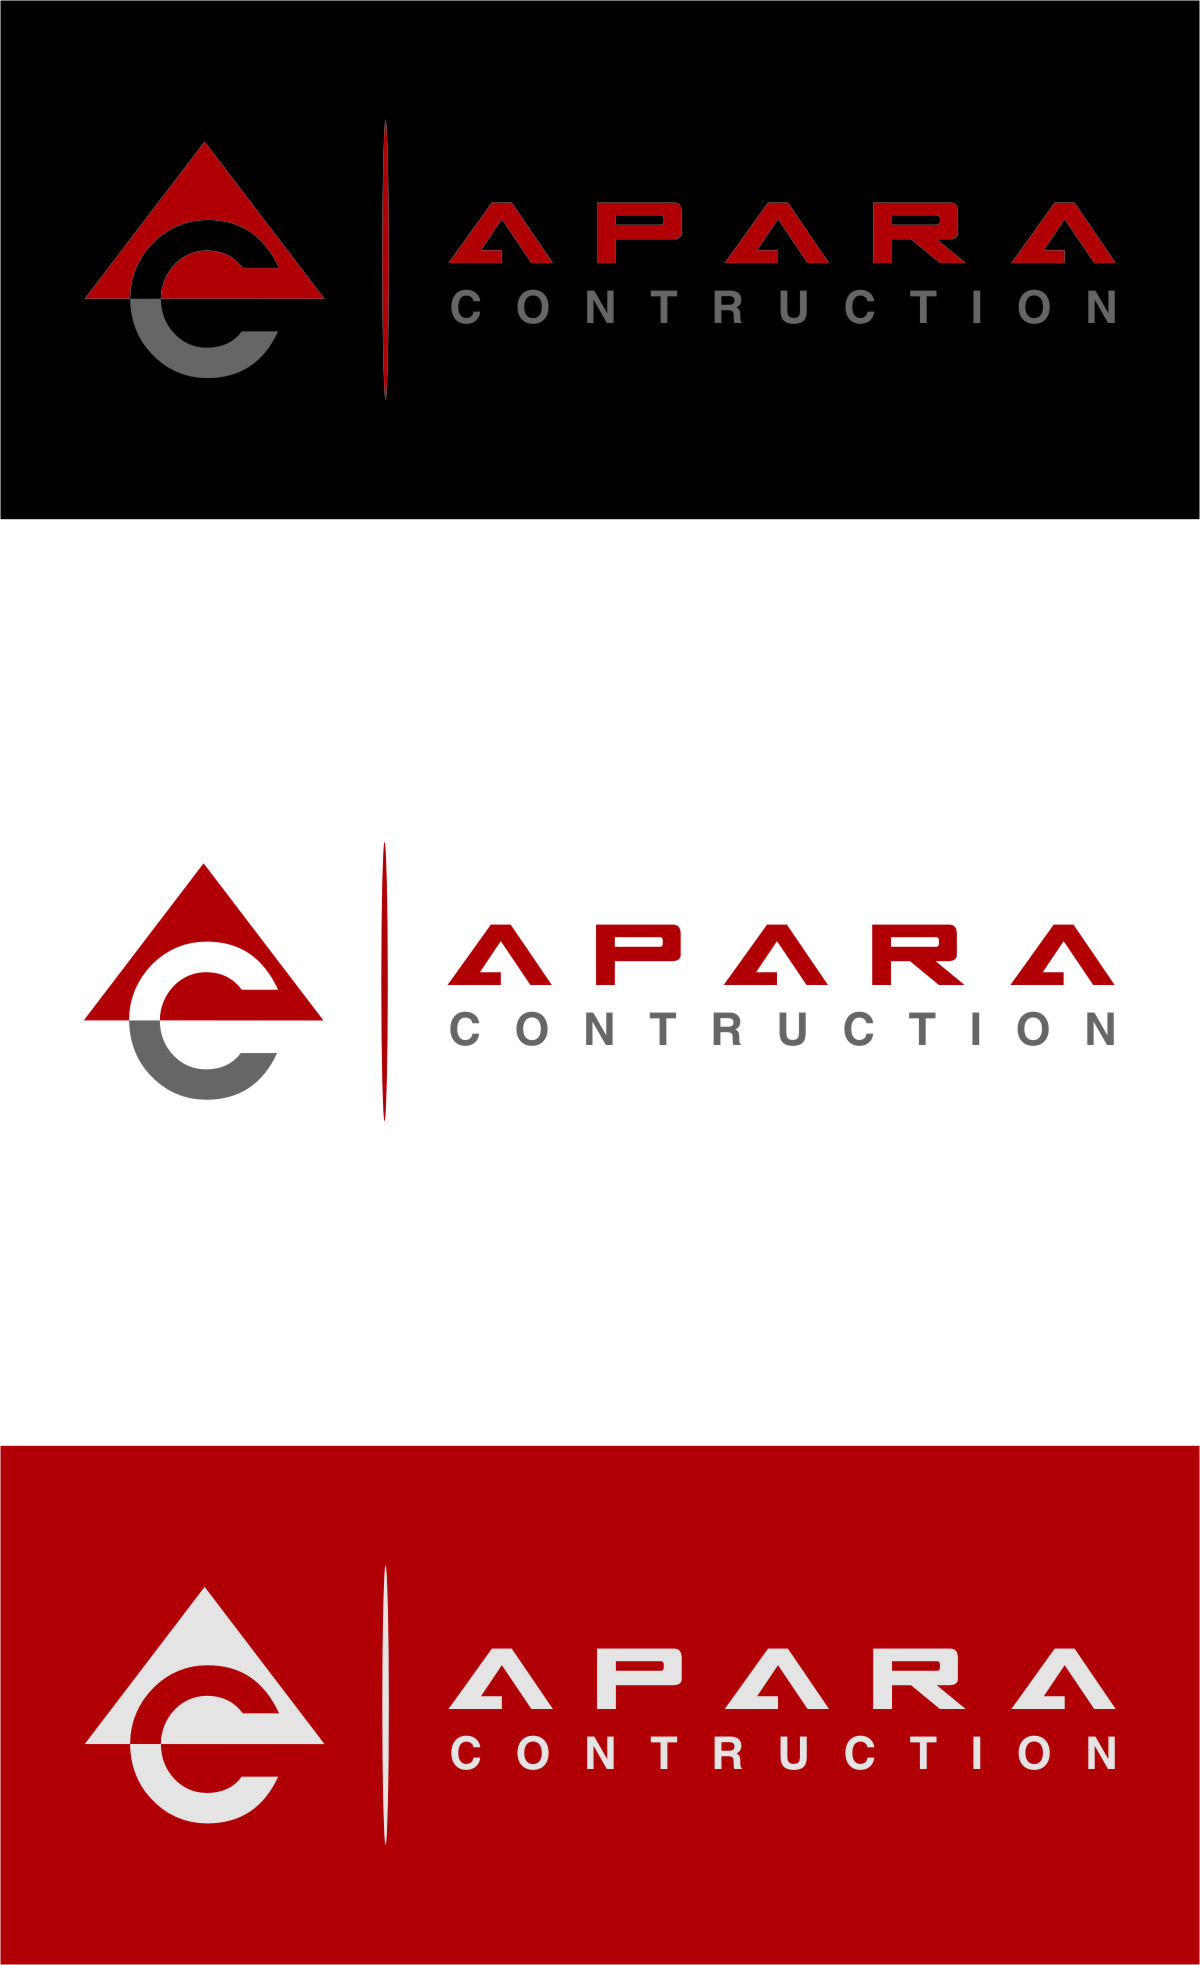 Logo Design by Ngepet_art - Entry No. 28 in the Logo Design Contest Apara Construction Logo Design.